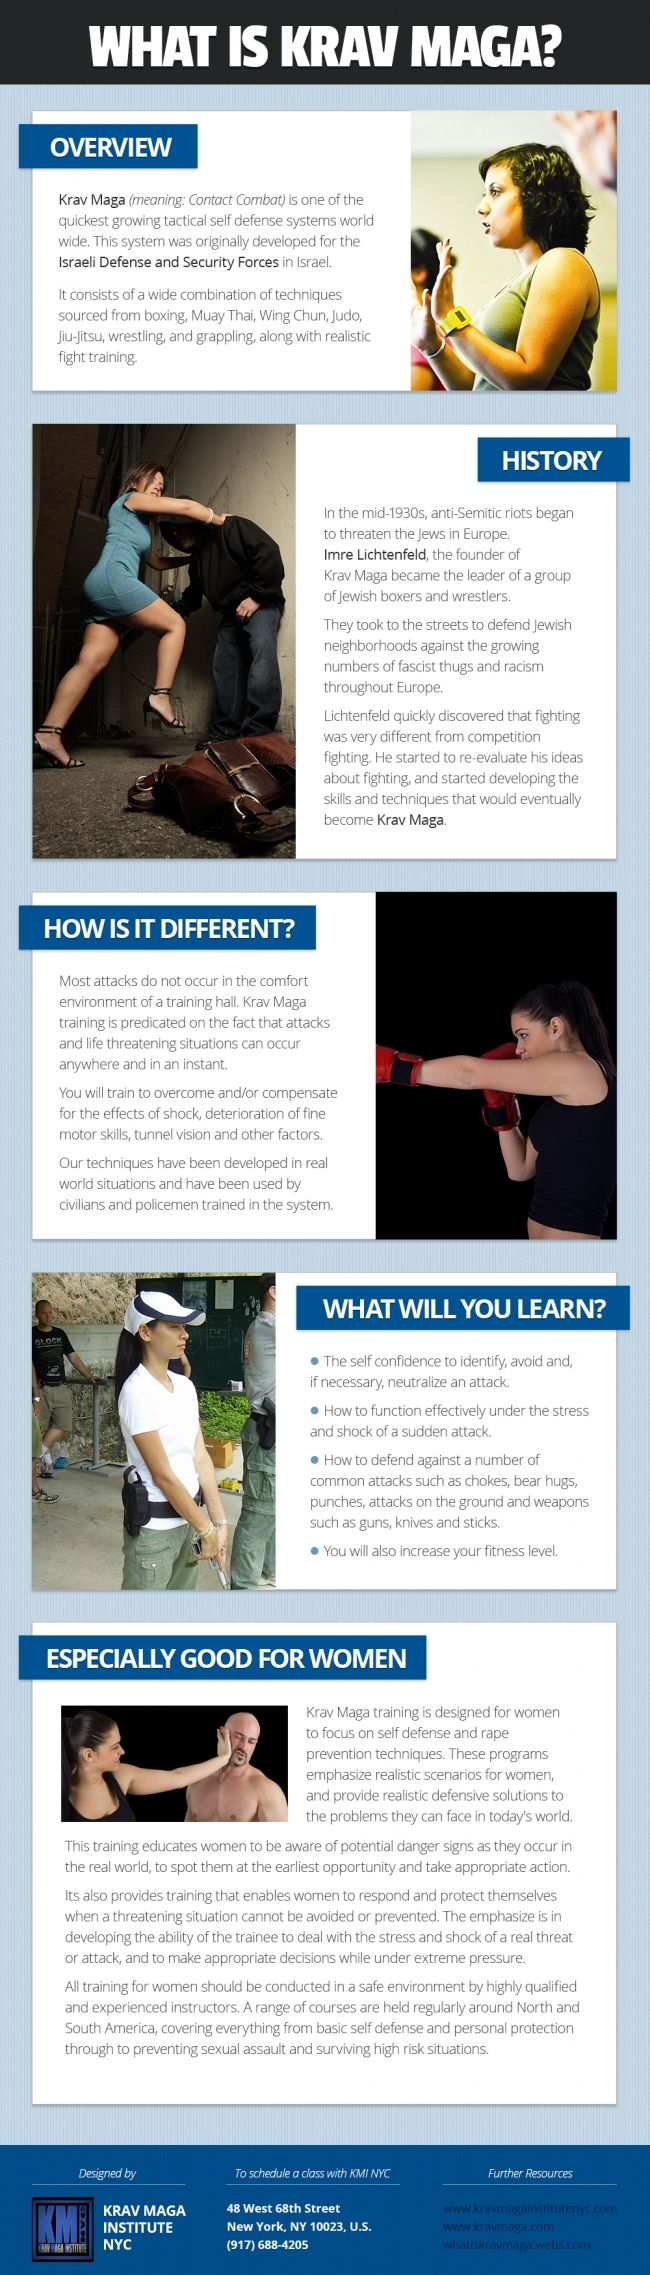 Krav Maga for #women-empower women [infographic]